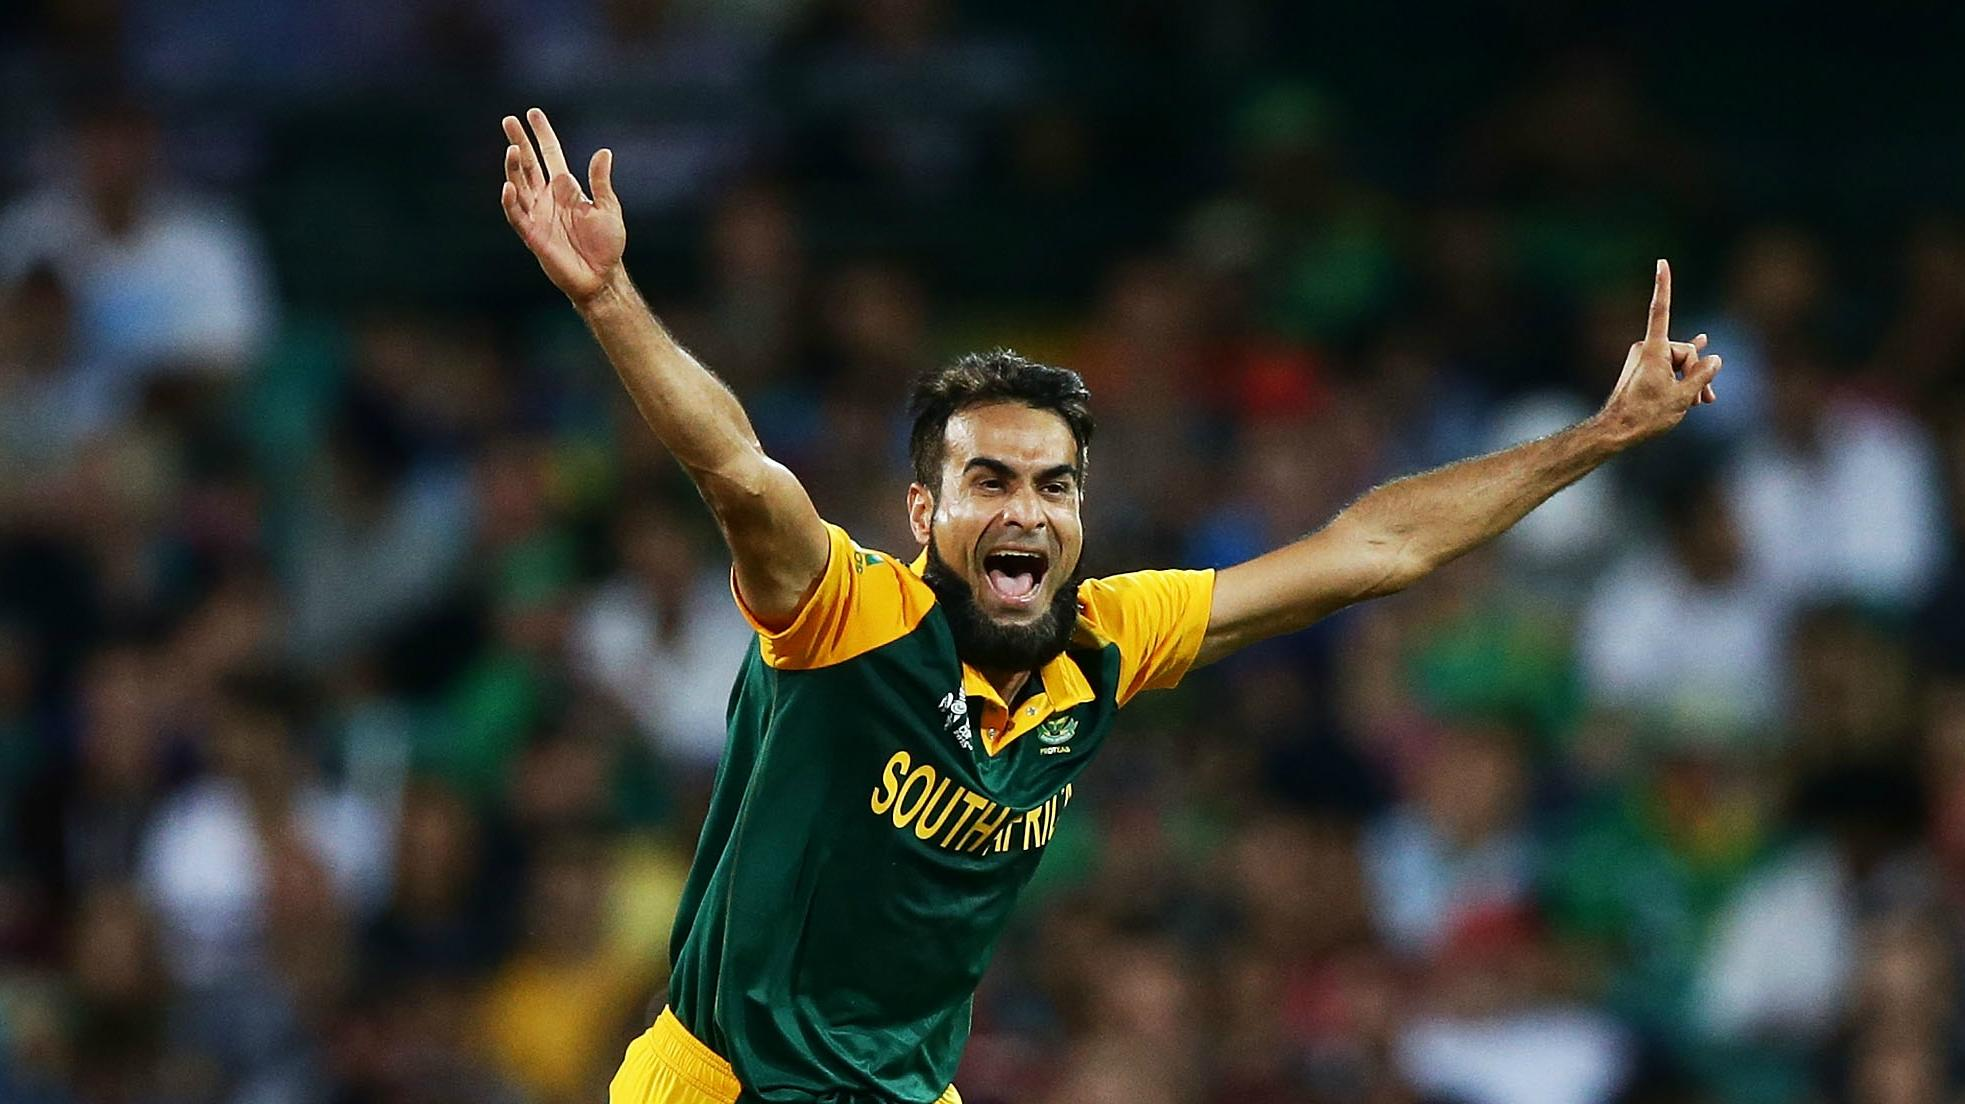 Imran Tahir,A Chennai Super Kings Tale